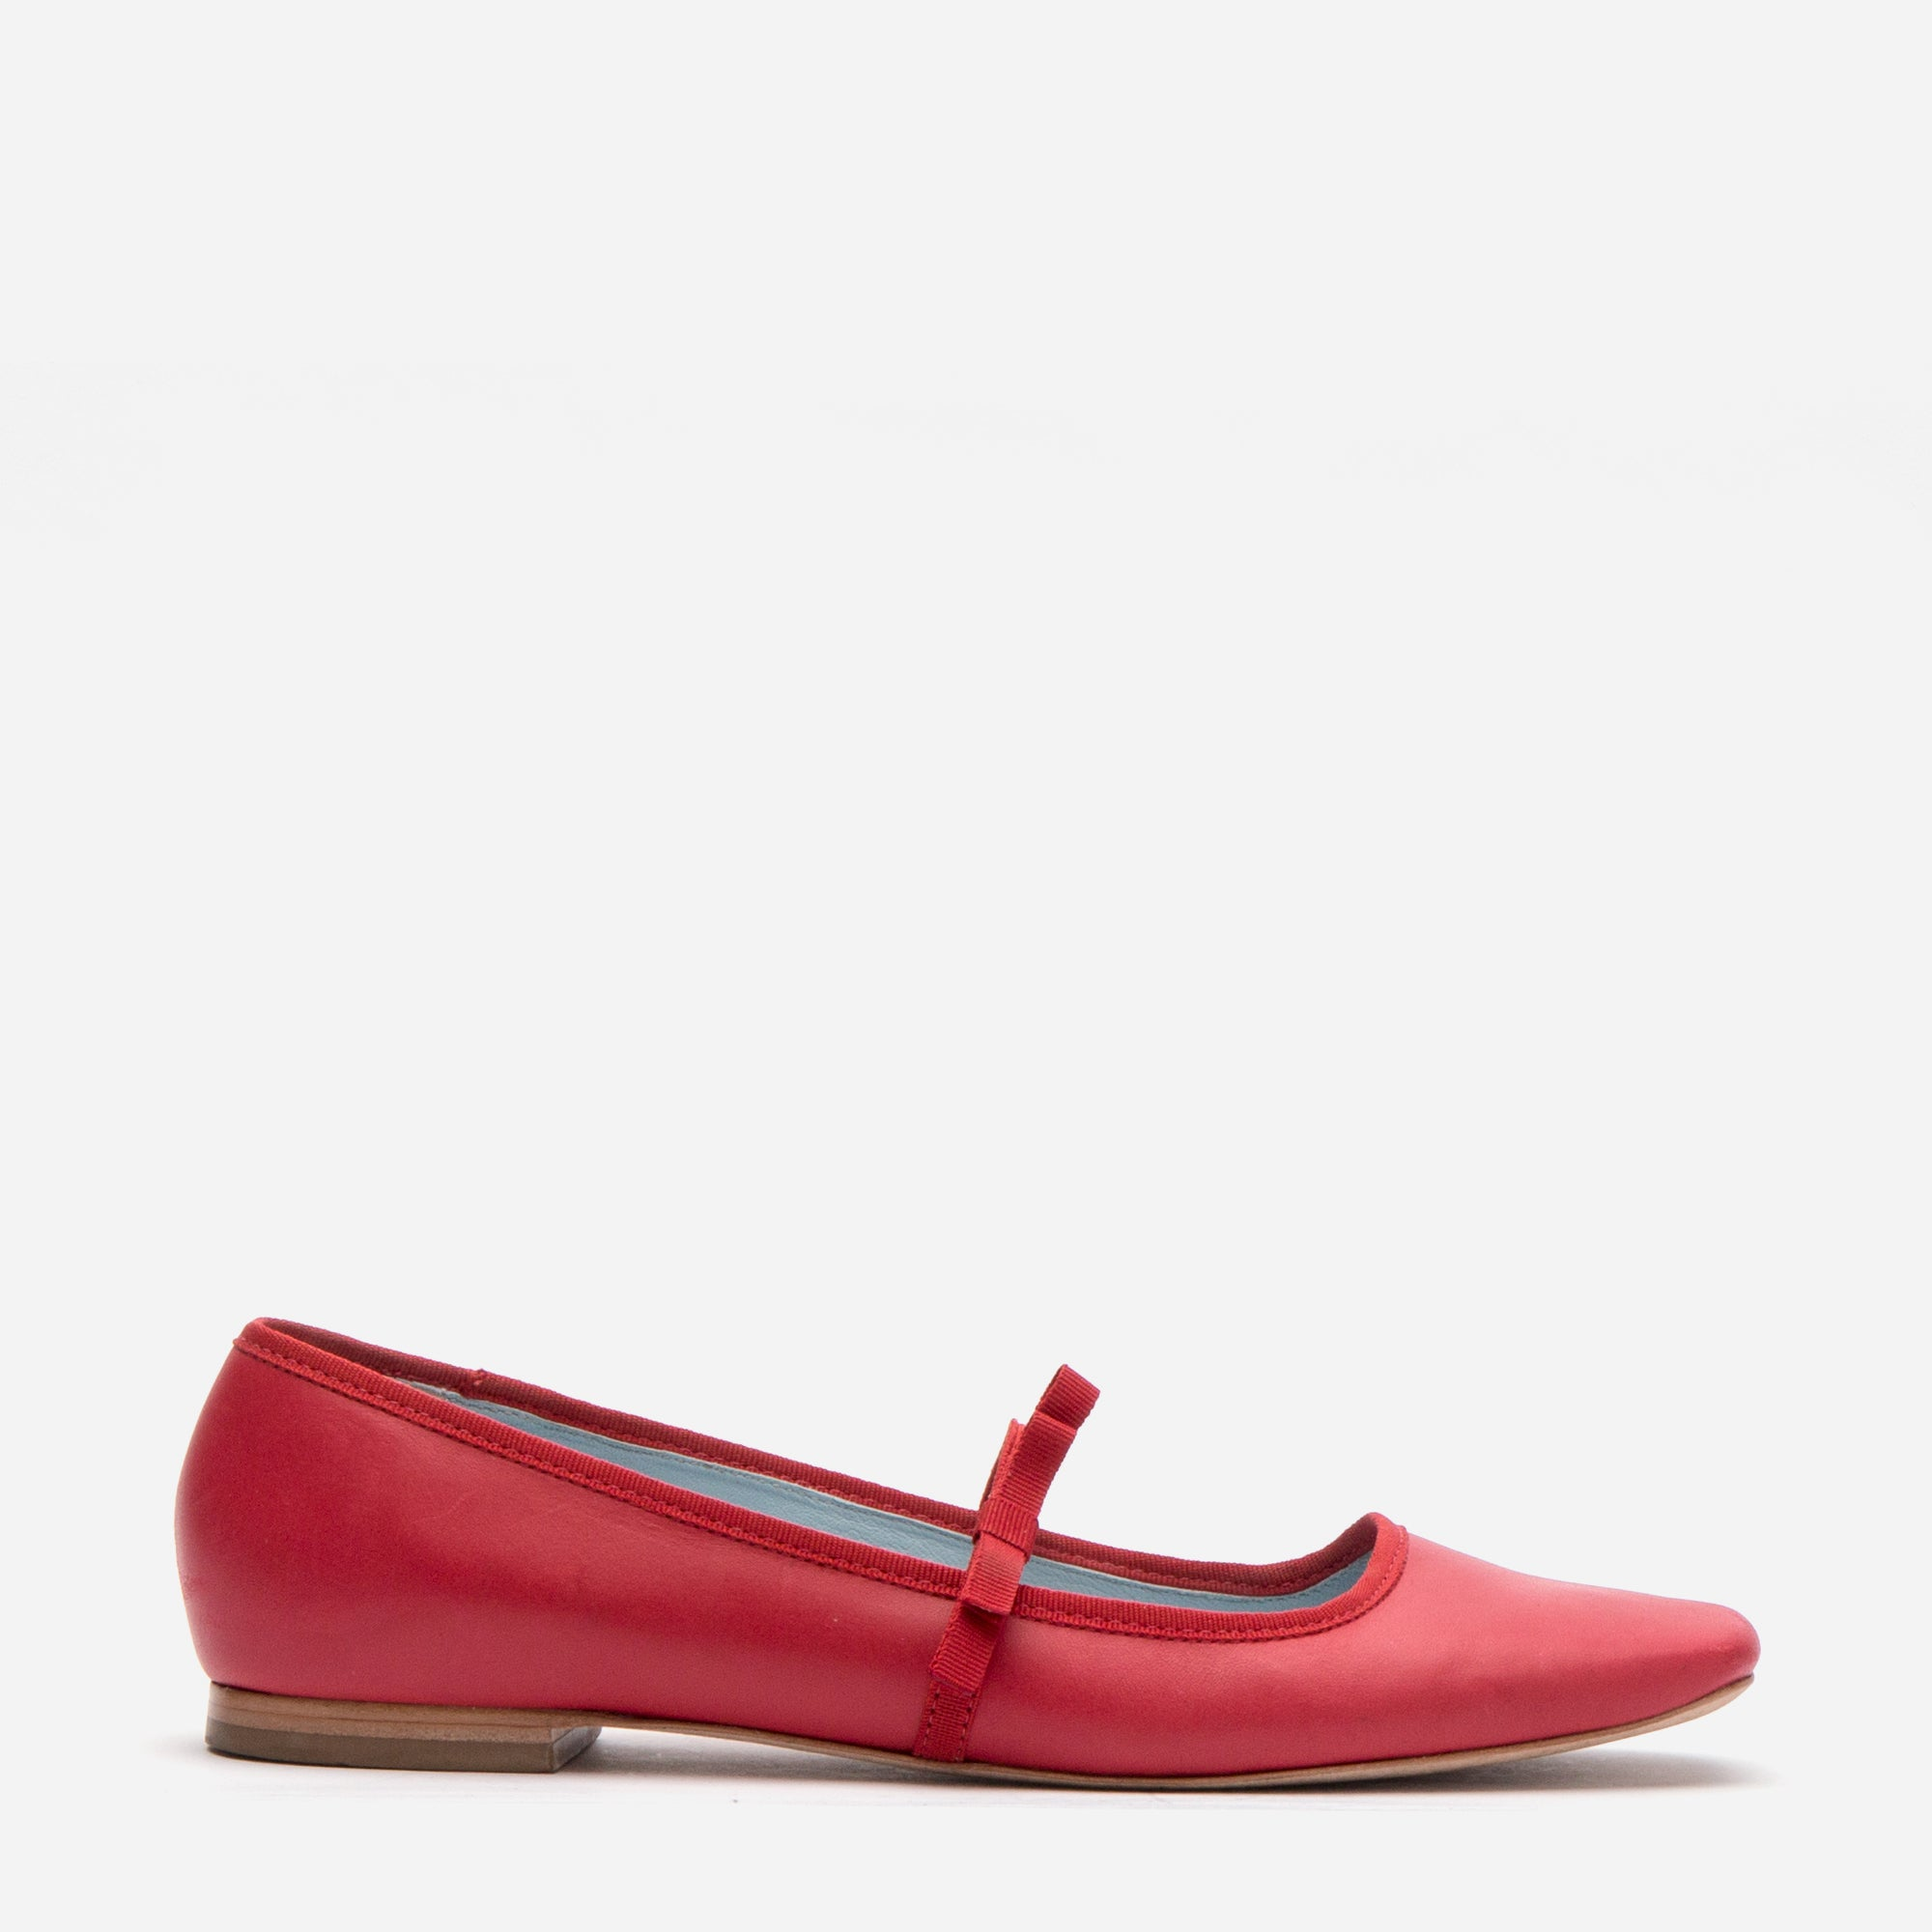 Jude Mary Jane Leather Flat Red